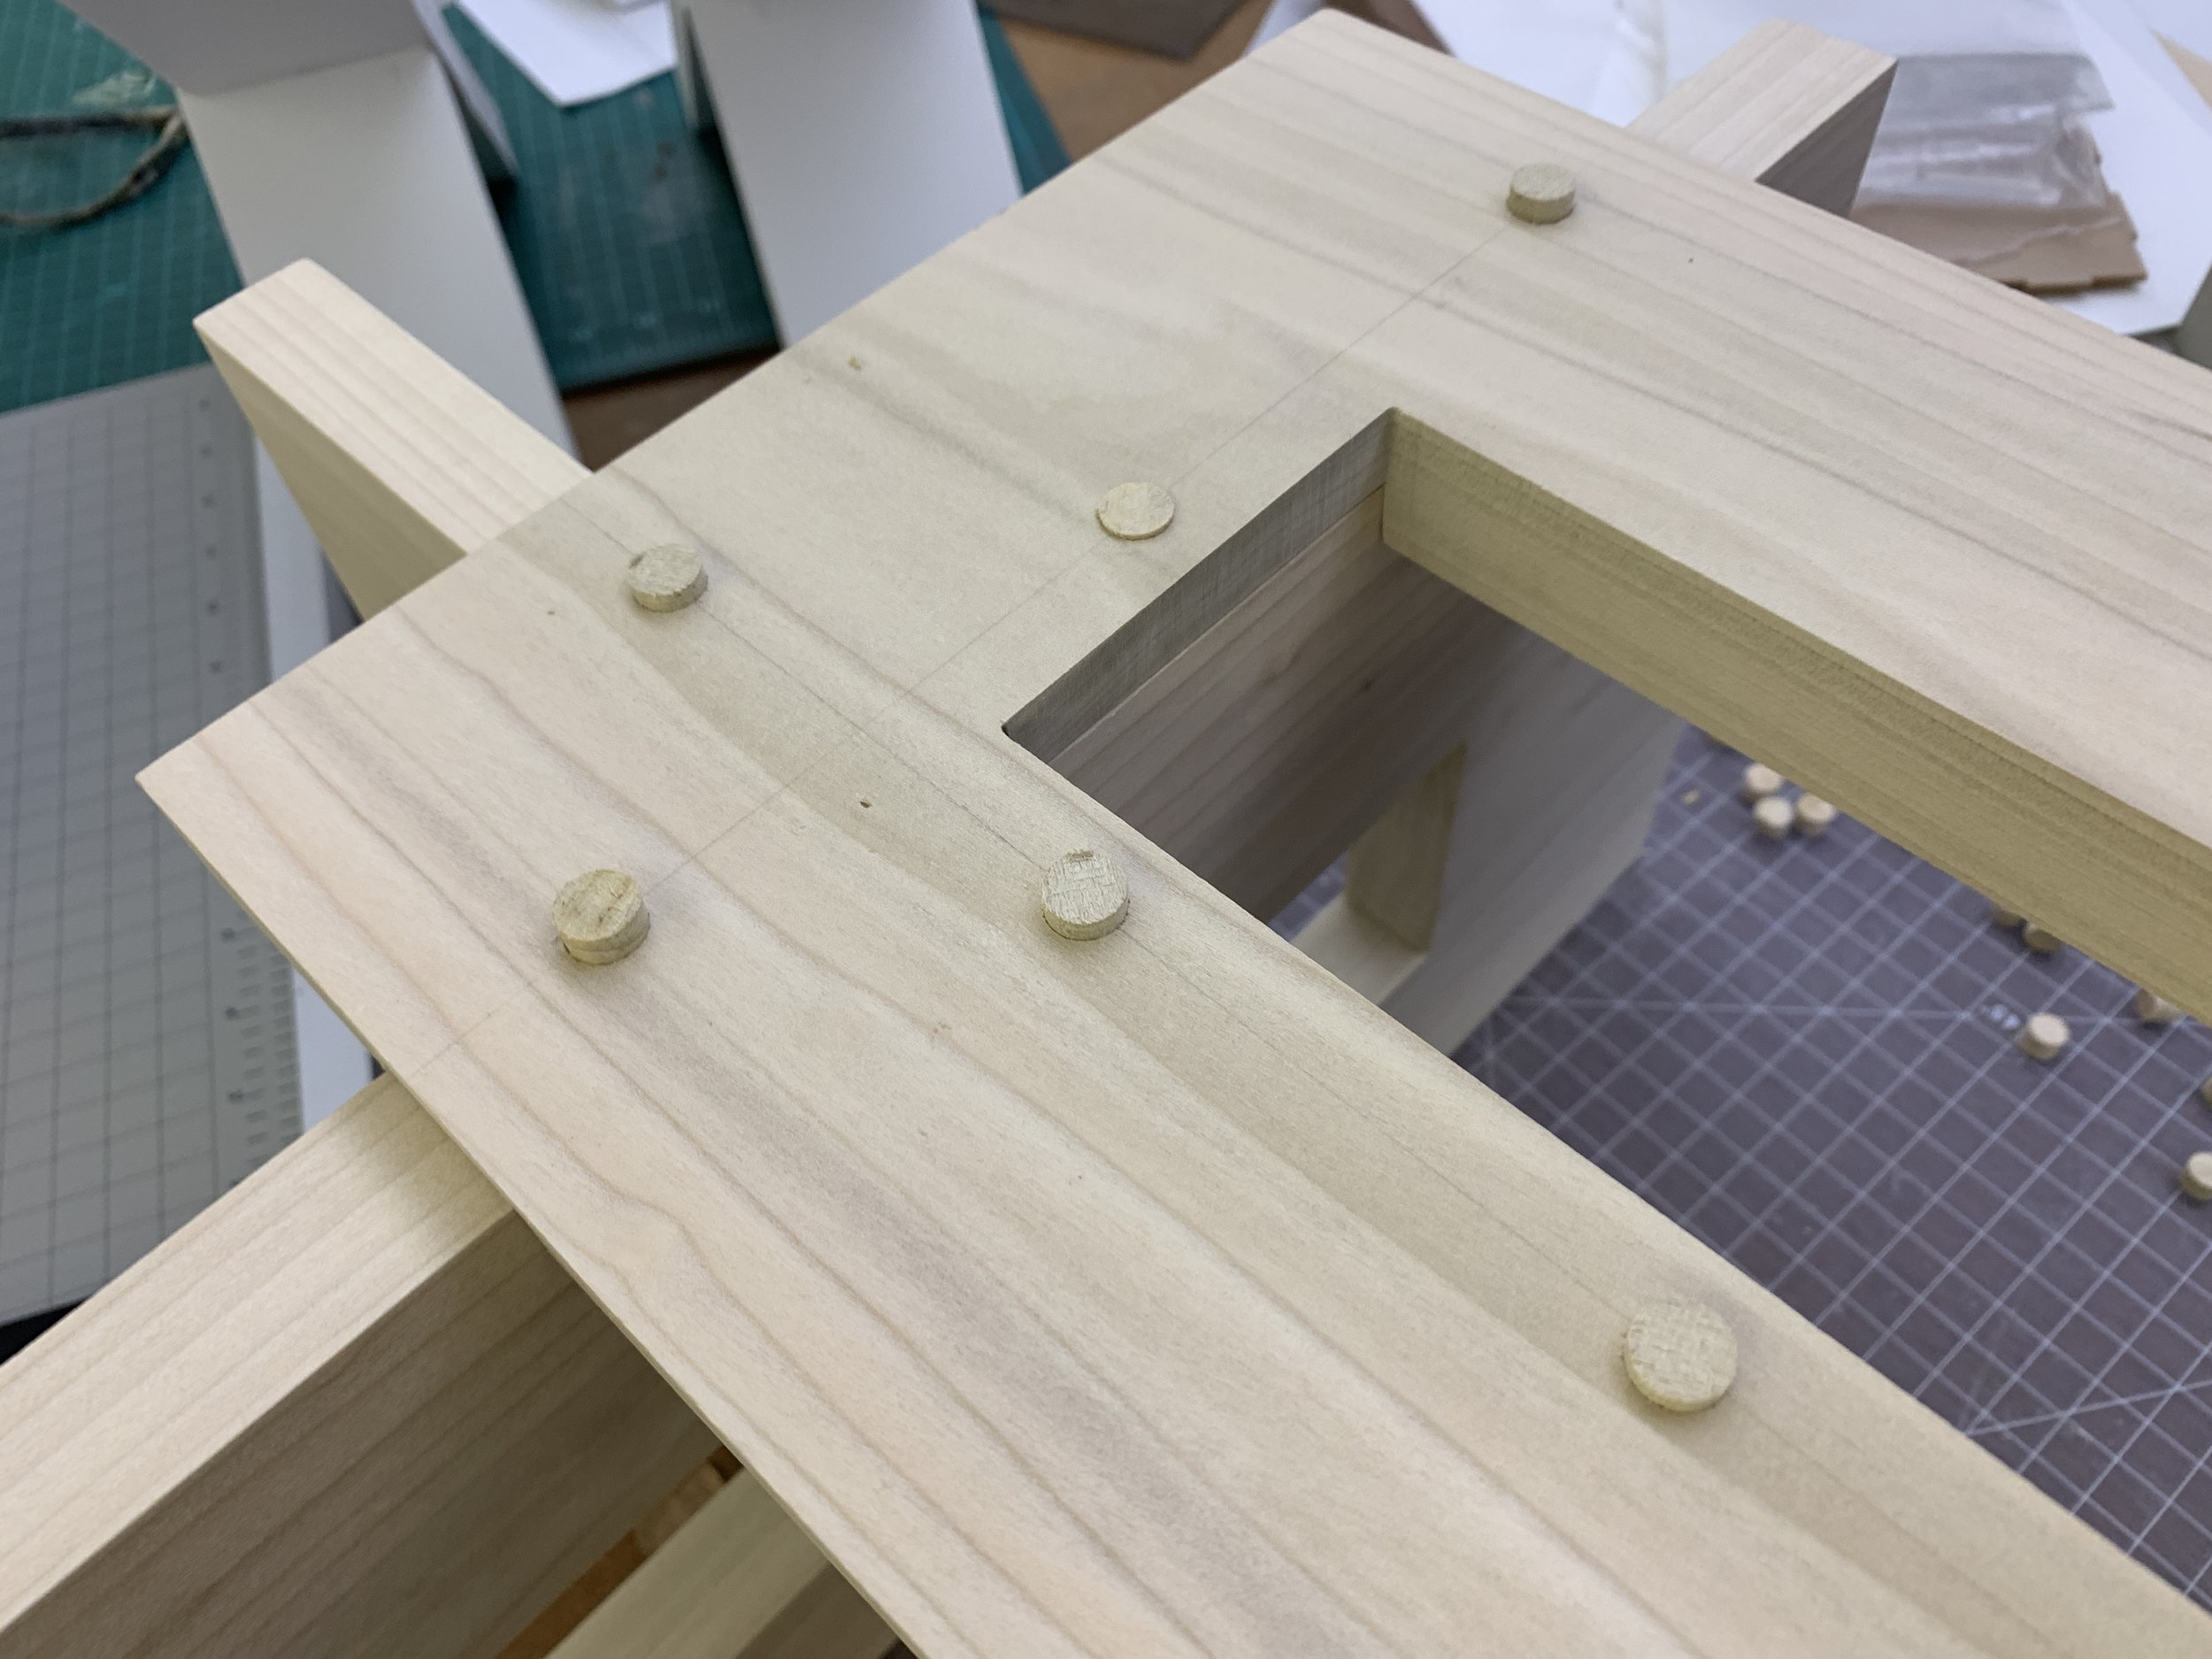 Assembled geoform with wooden plugs setting in wood glue before chiseling